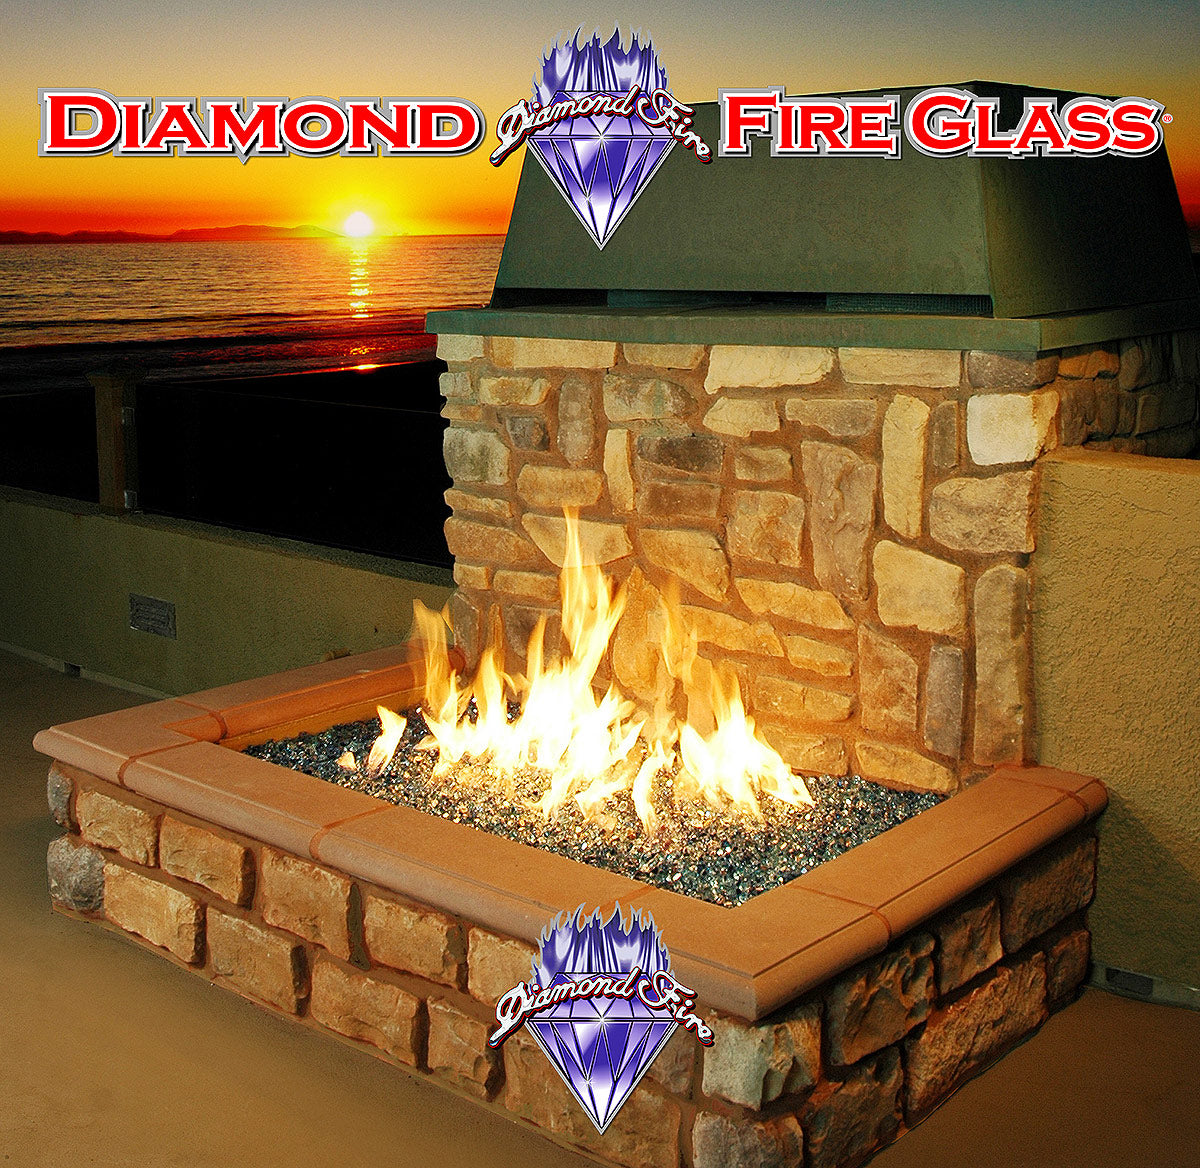 Blue and Teal reflective fire pit fireplace glass installed in a rooftop beachfront outdoor fire pit